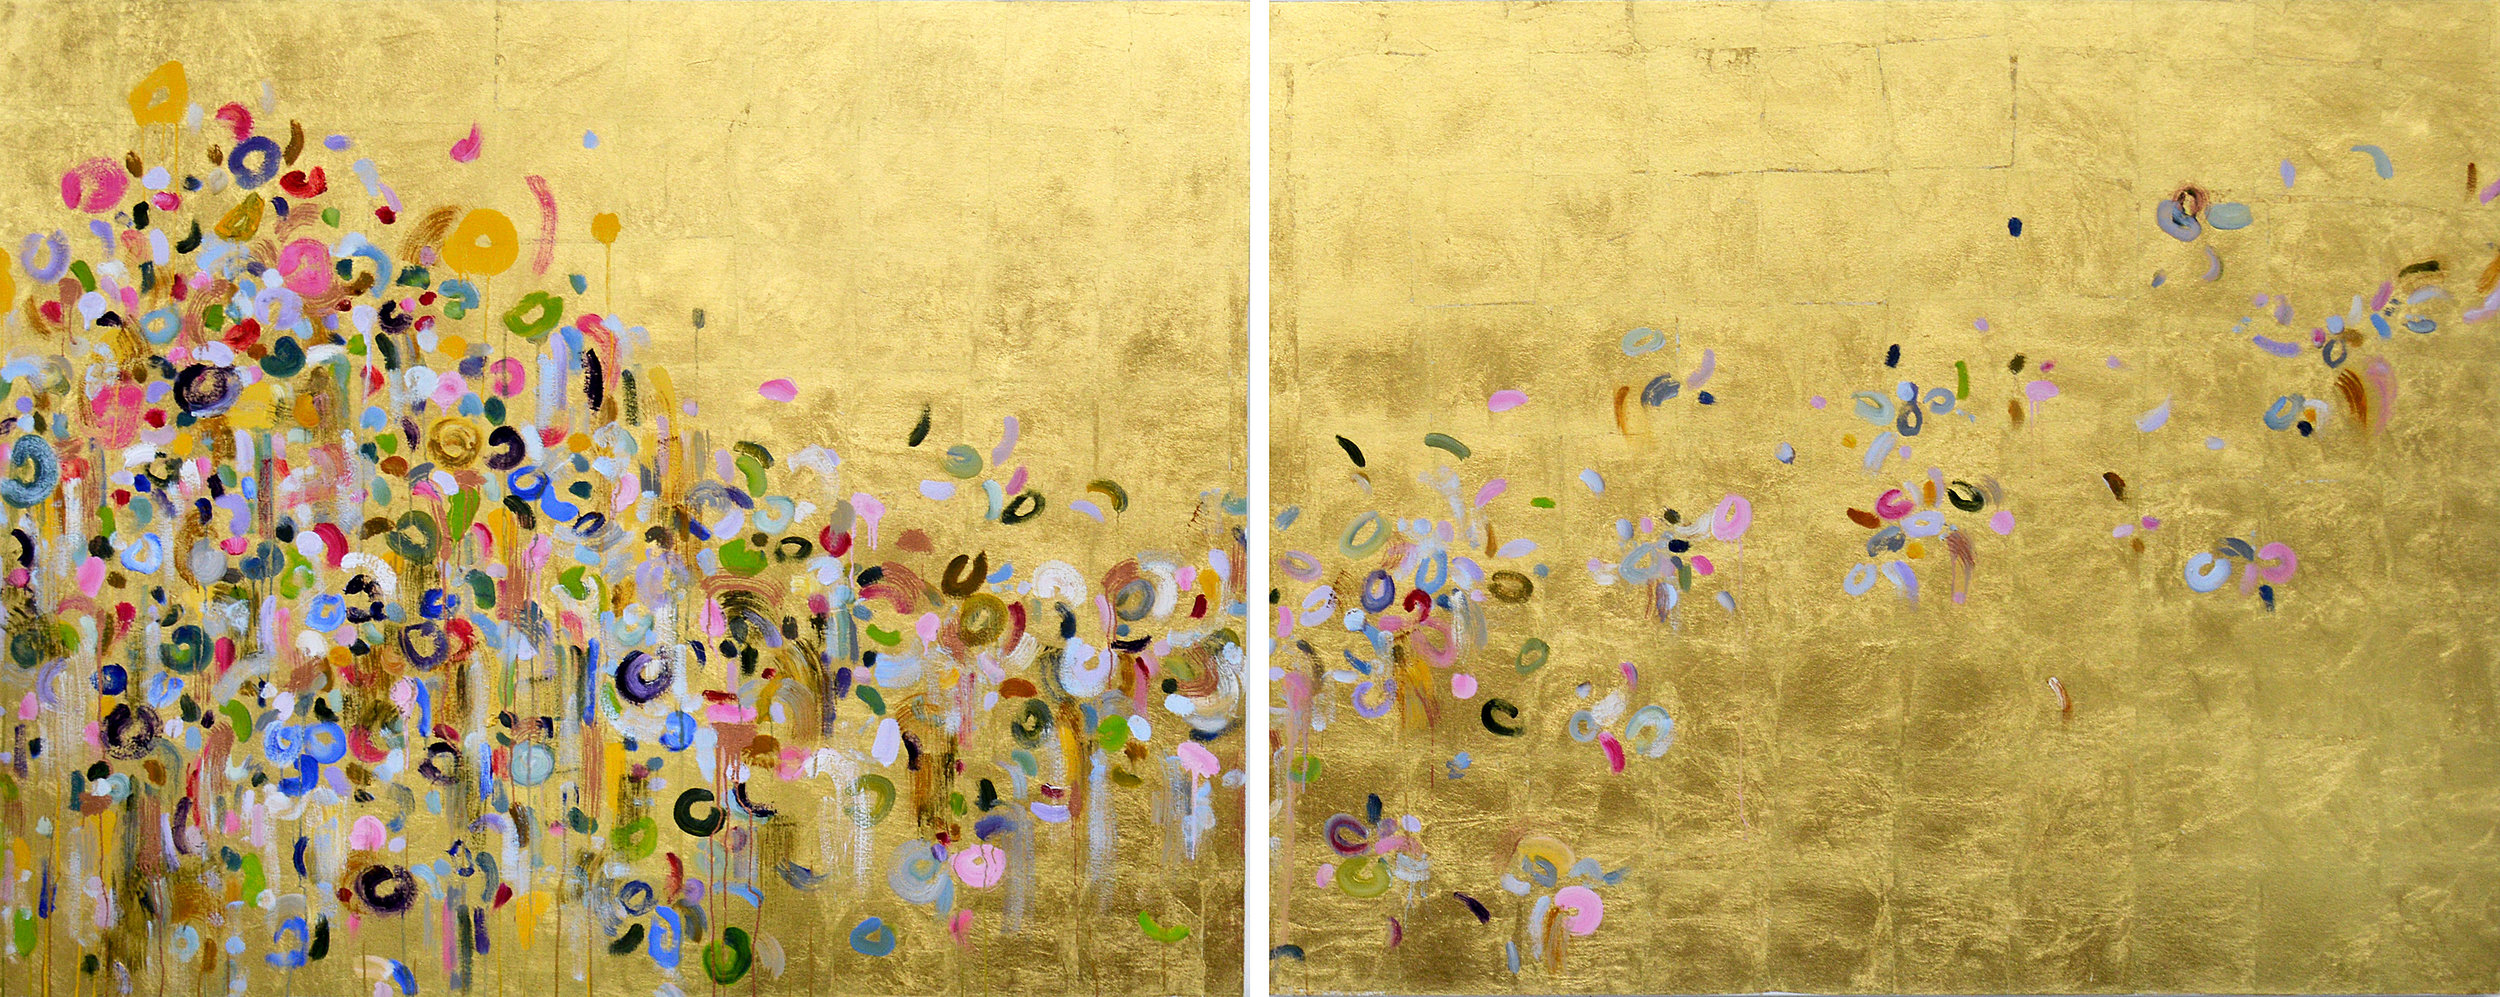 On the Run#48 x 120 in. total, diptych